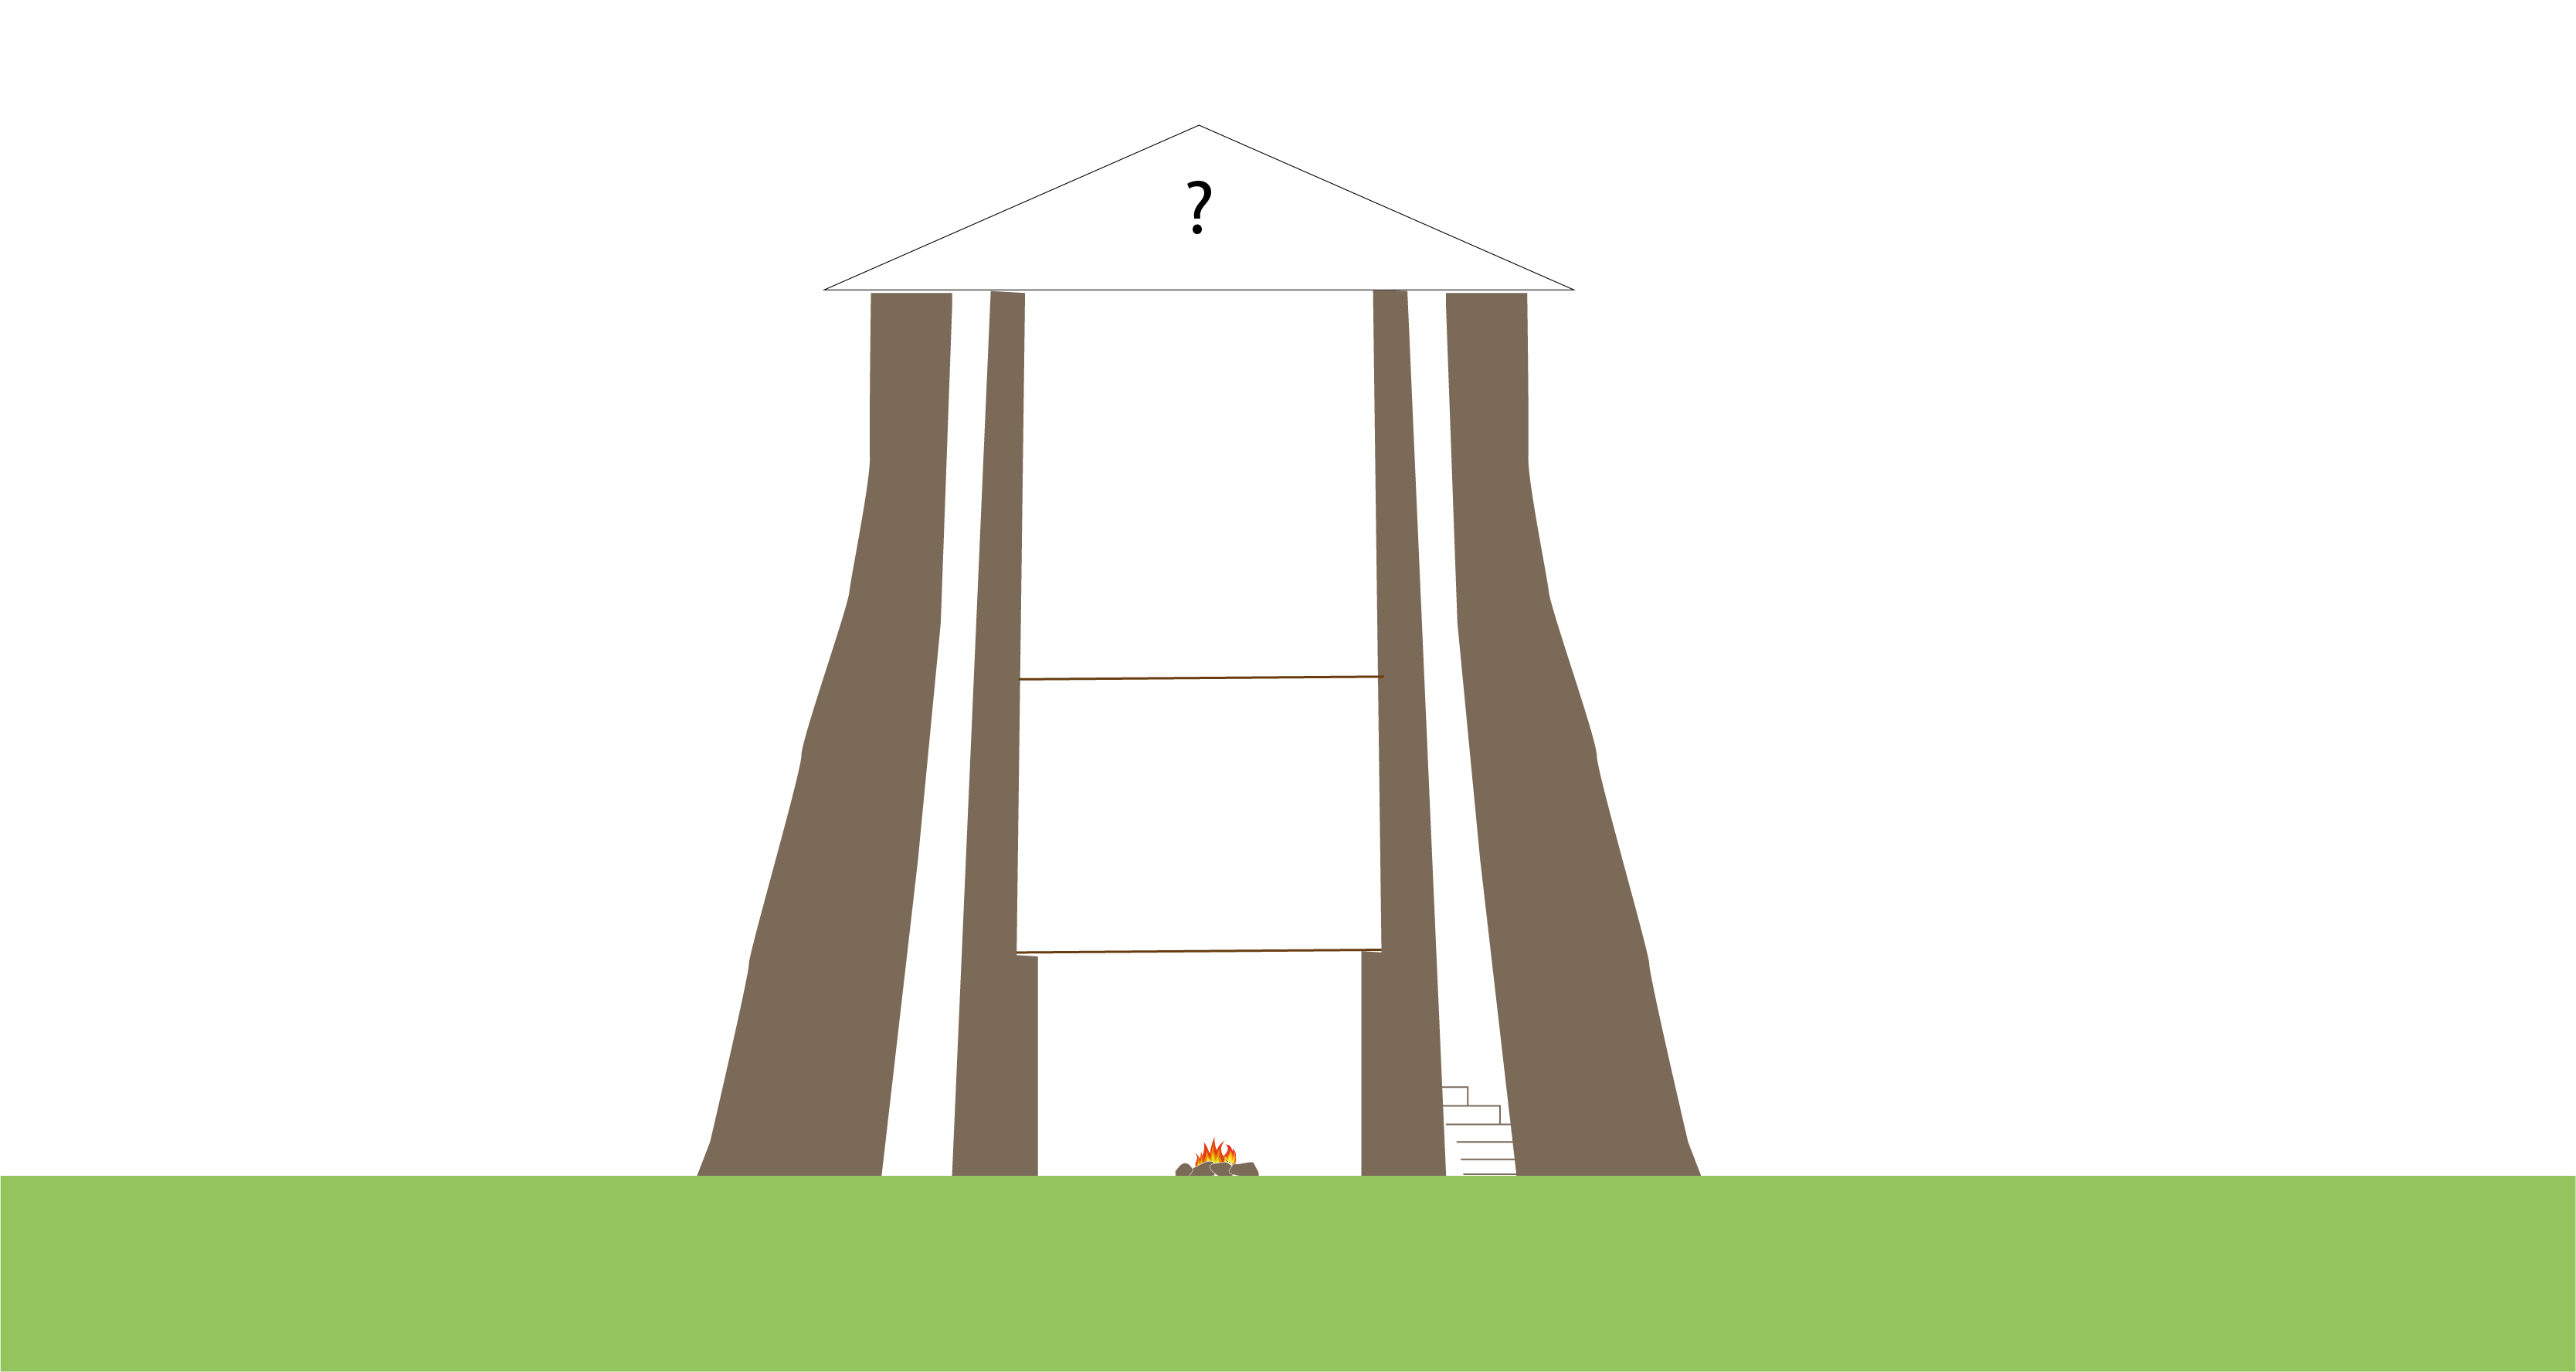 illustration of a tall tower with no roof